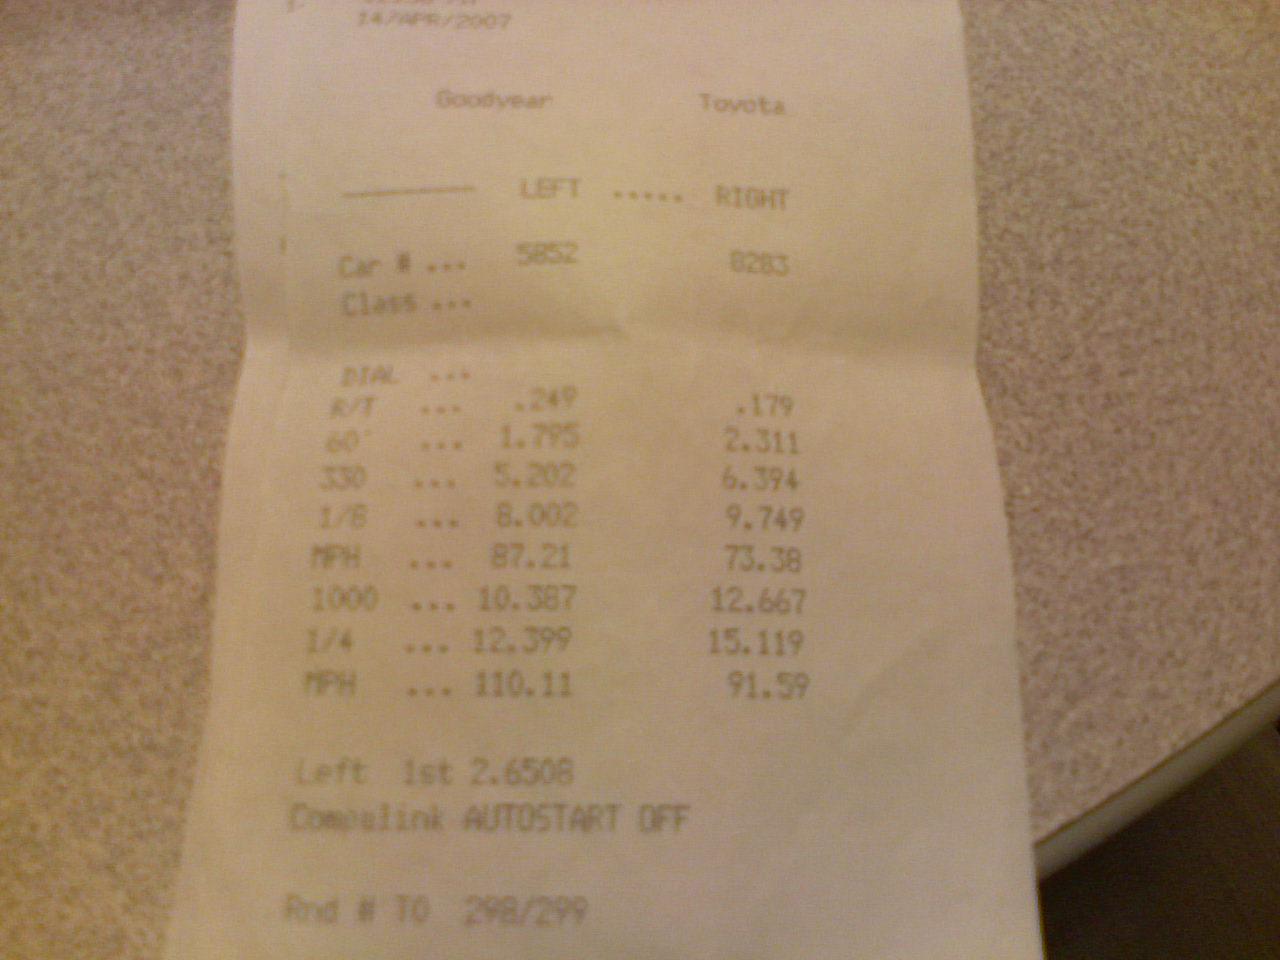 2001 Chevrolet Corvette Coupe Timeslip Scan